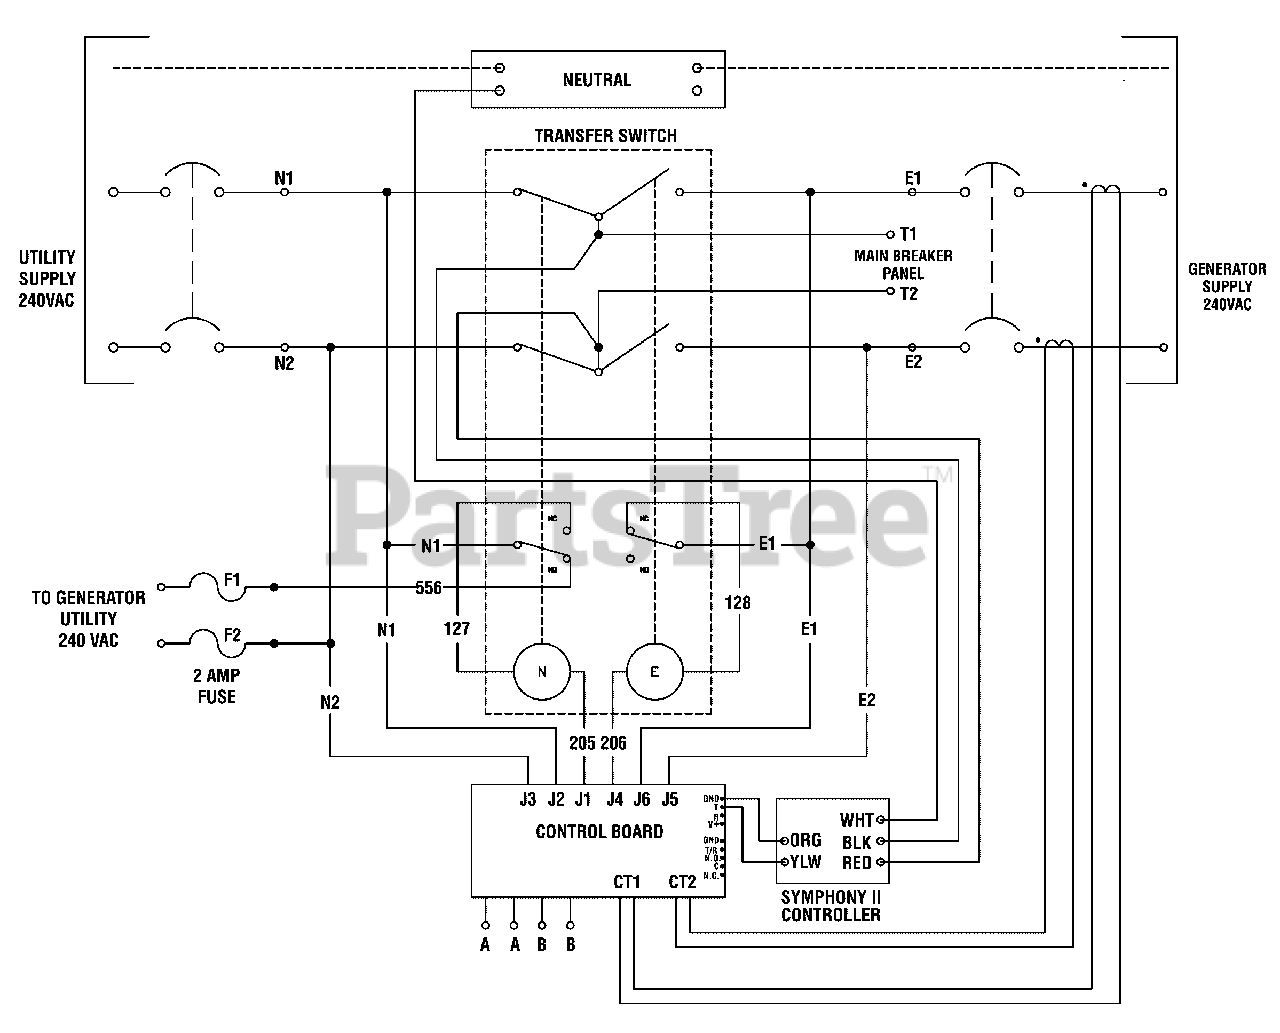 Briggs & Stratton 040483-01 - Briggs & Stratton 16kW Home ... on manual transfer switch diagram, portable generator transfer switch diagram, whole house transfer switch diagram, power transfer switch diagram, transfer switches specifications, limit switches wiring diagram, transfer switches electrical, install generator transfer switch diagram,